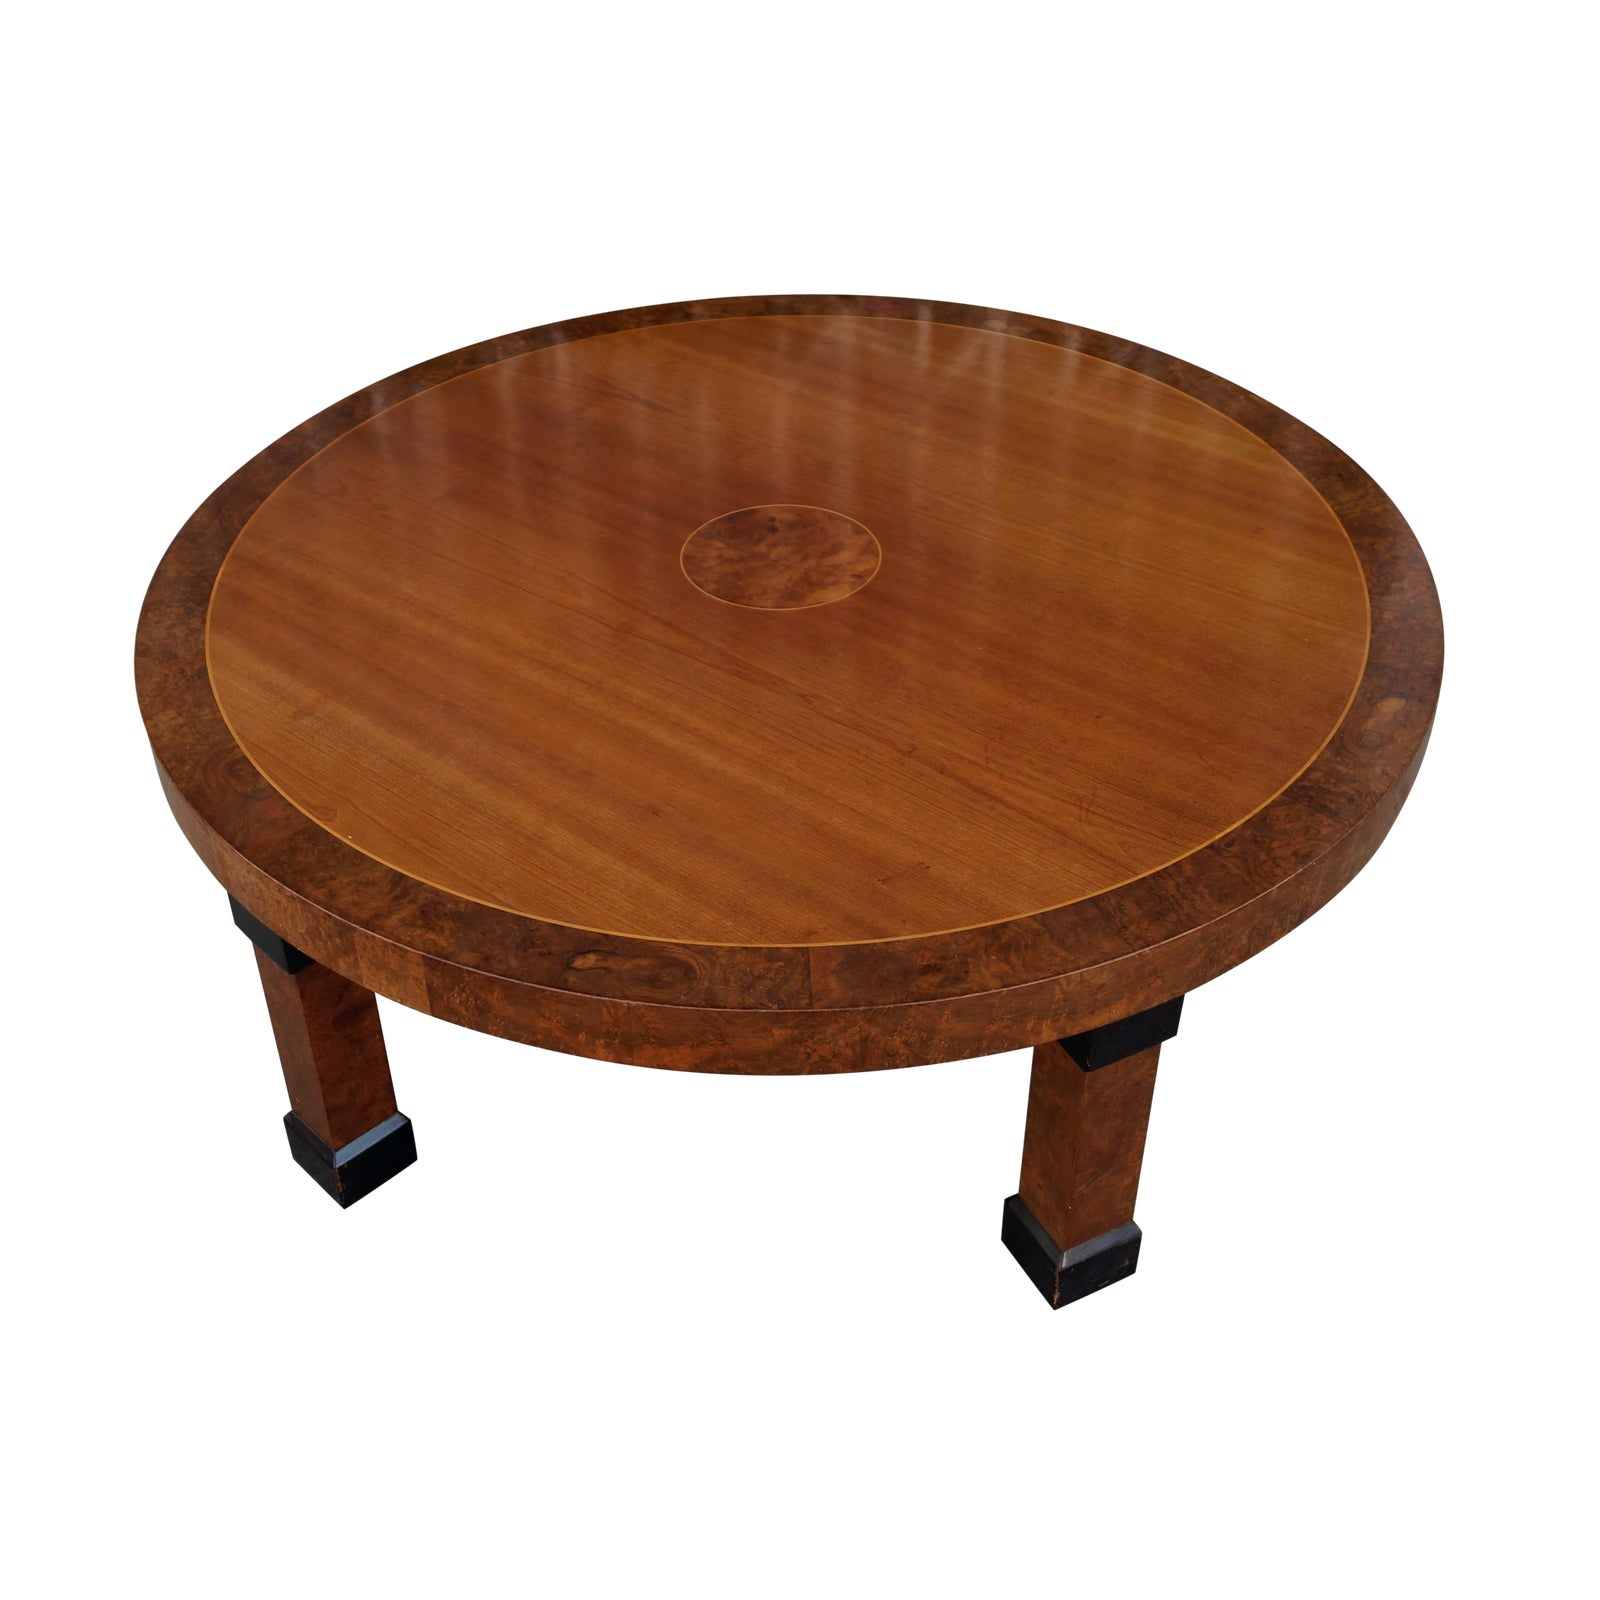 Vintage Style Round Coffee Table